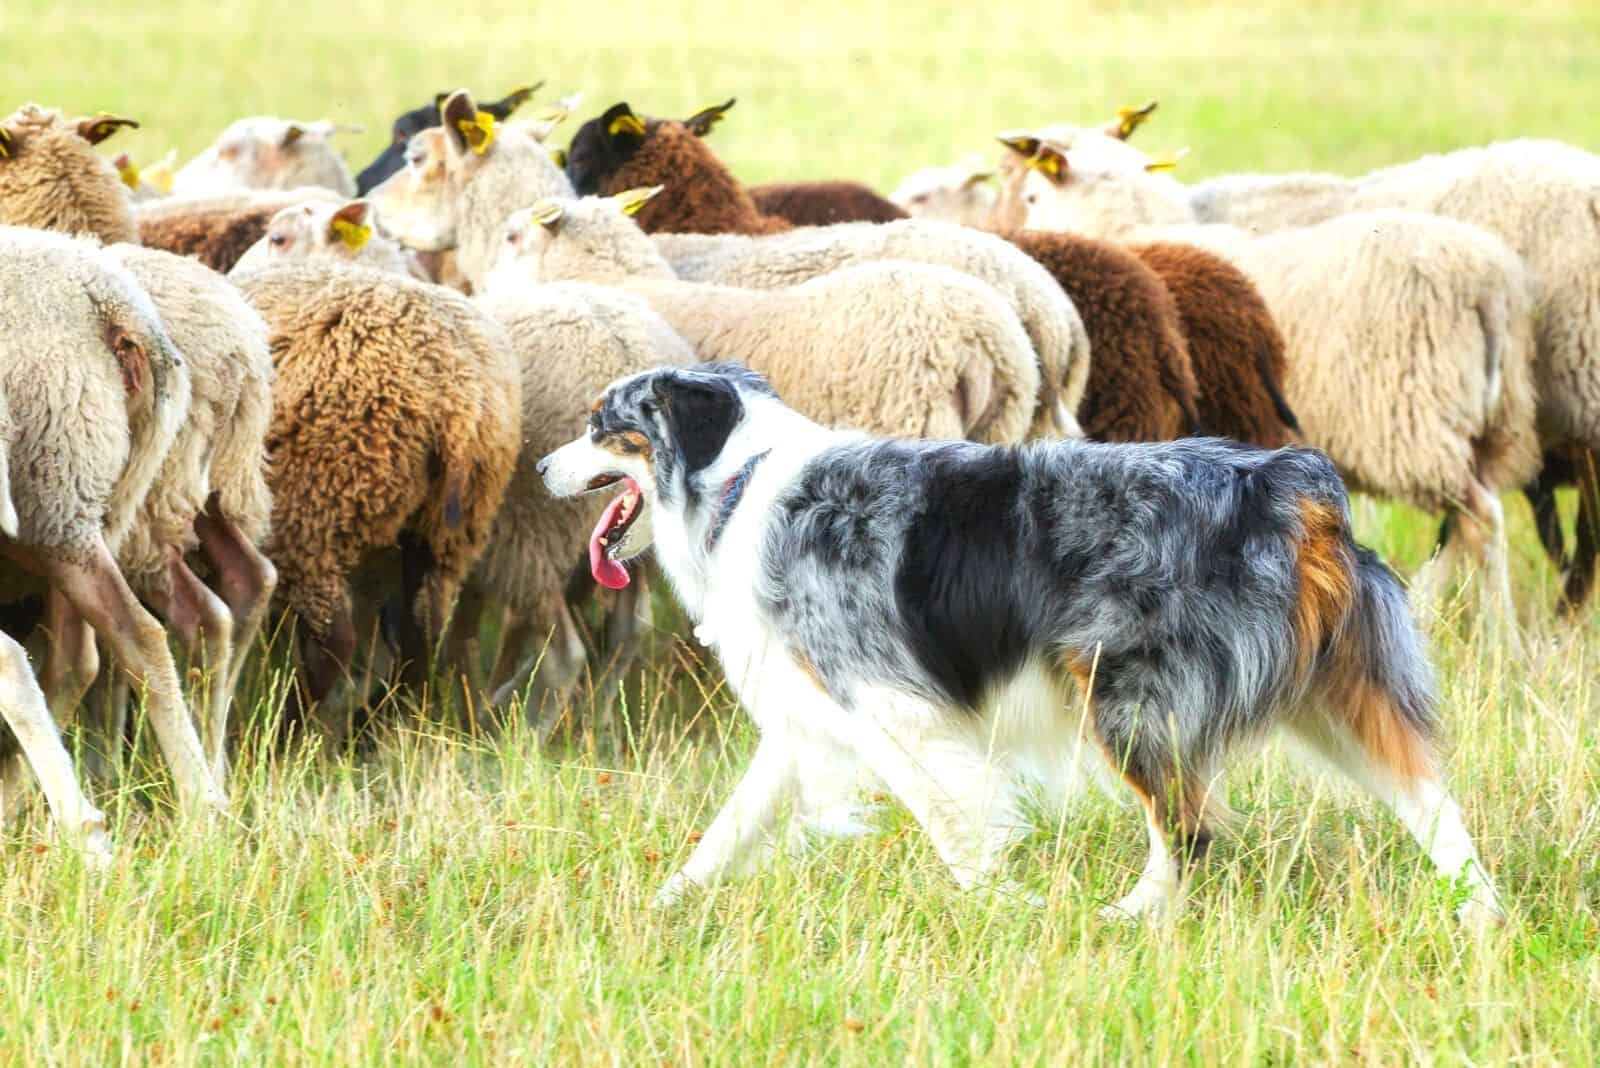 border collie herding a group of sheeps in the field